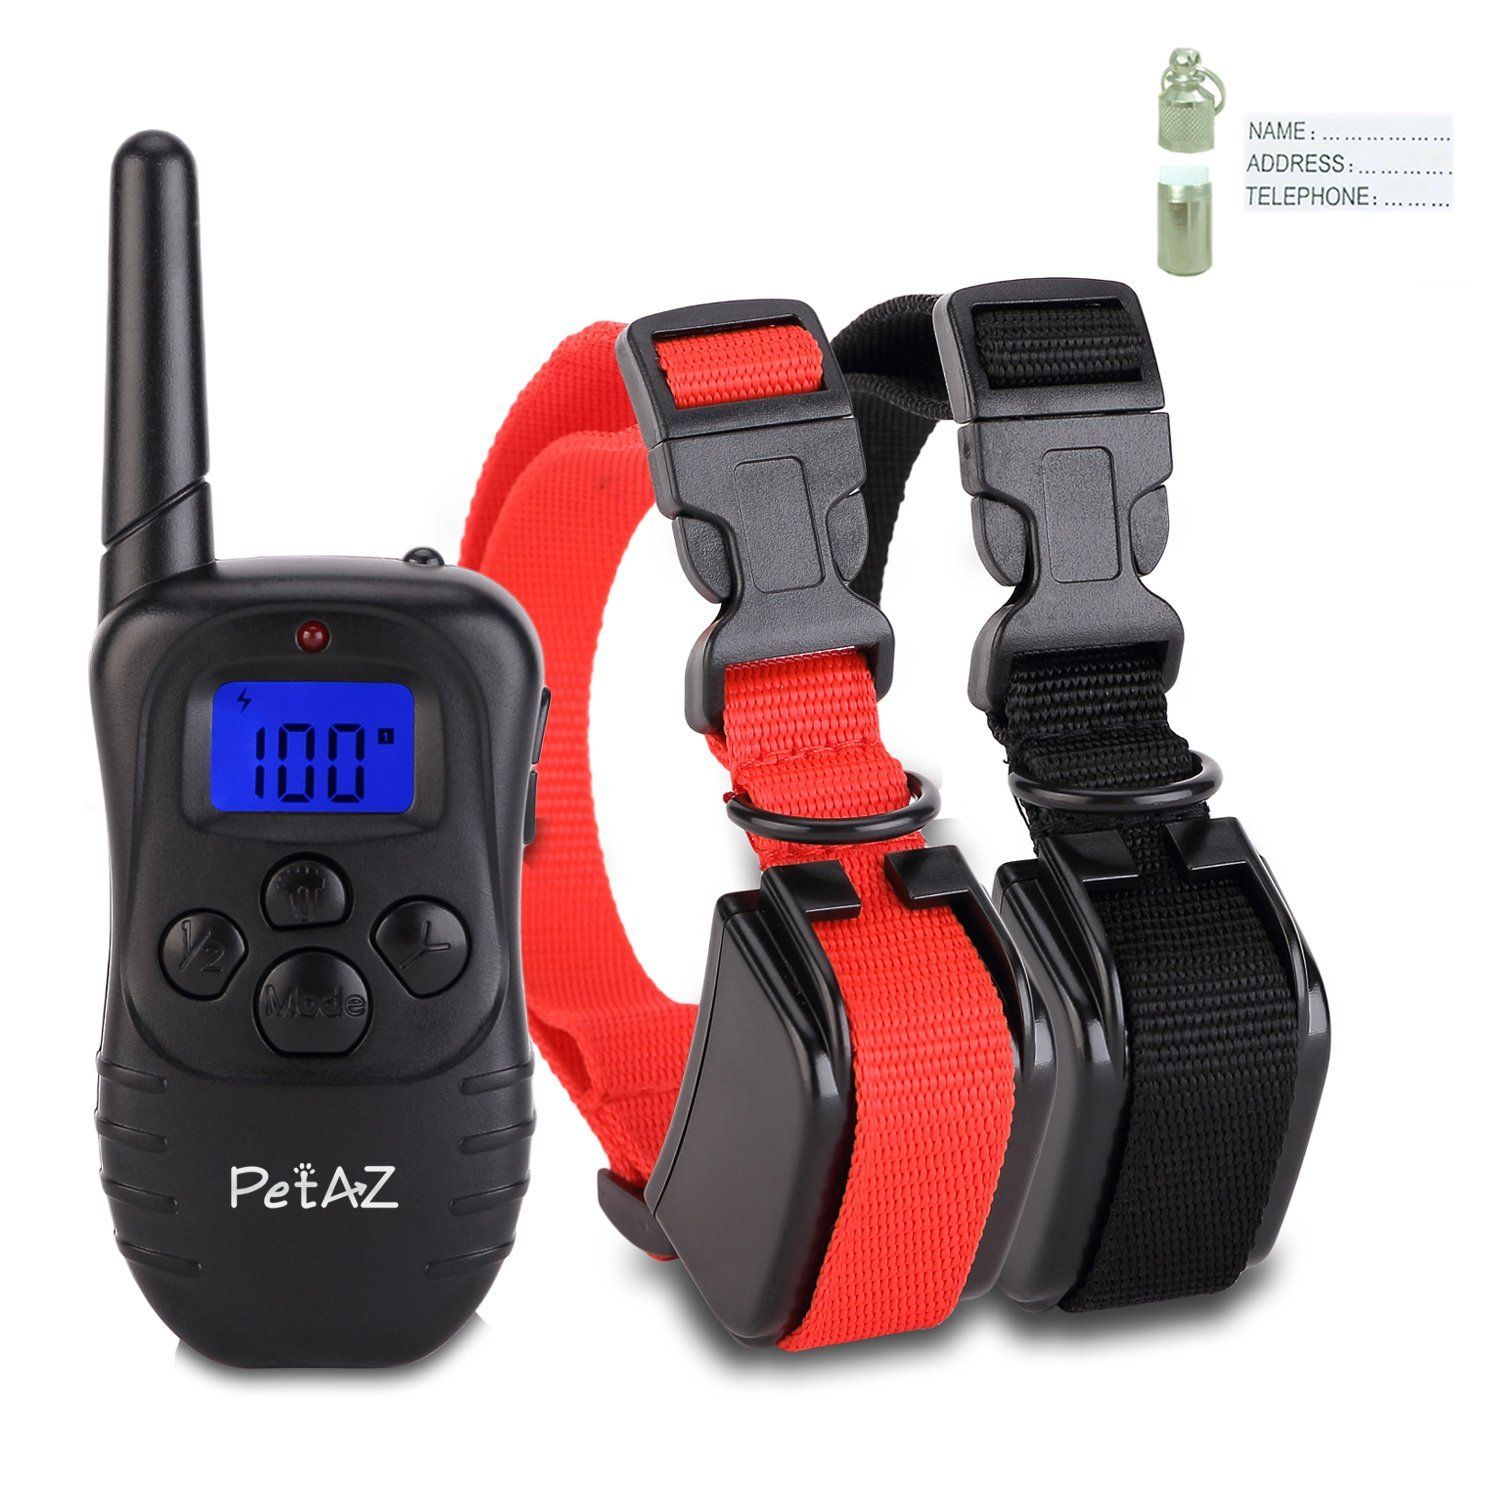 PetAZ Dog Training Collar With Remote Rechargeable and